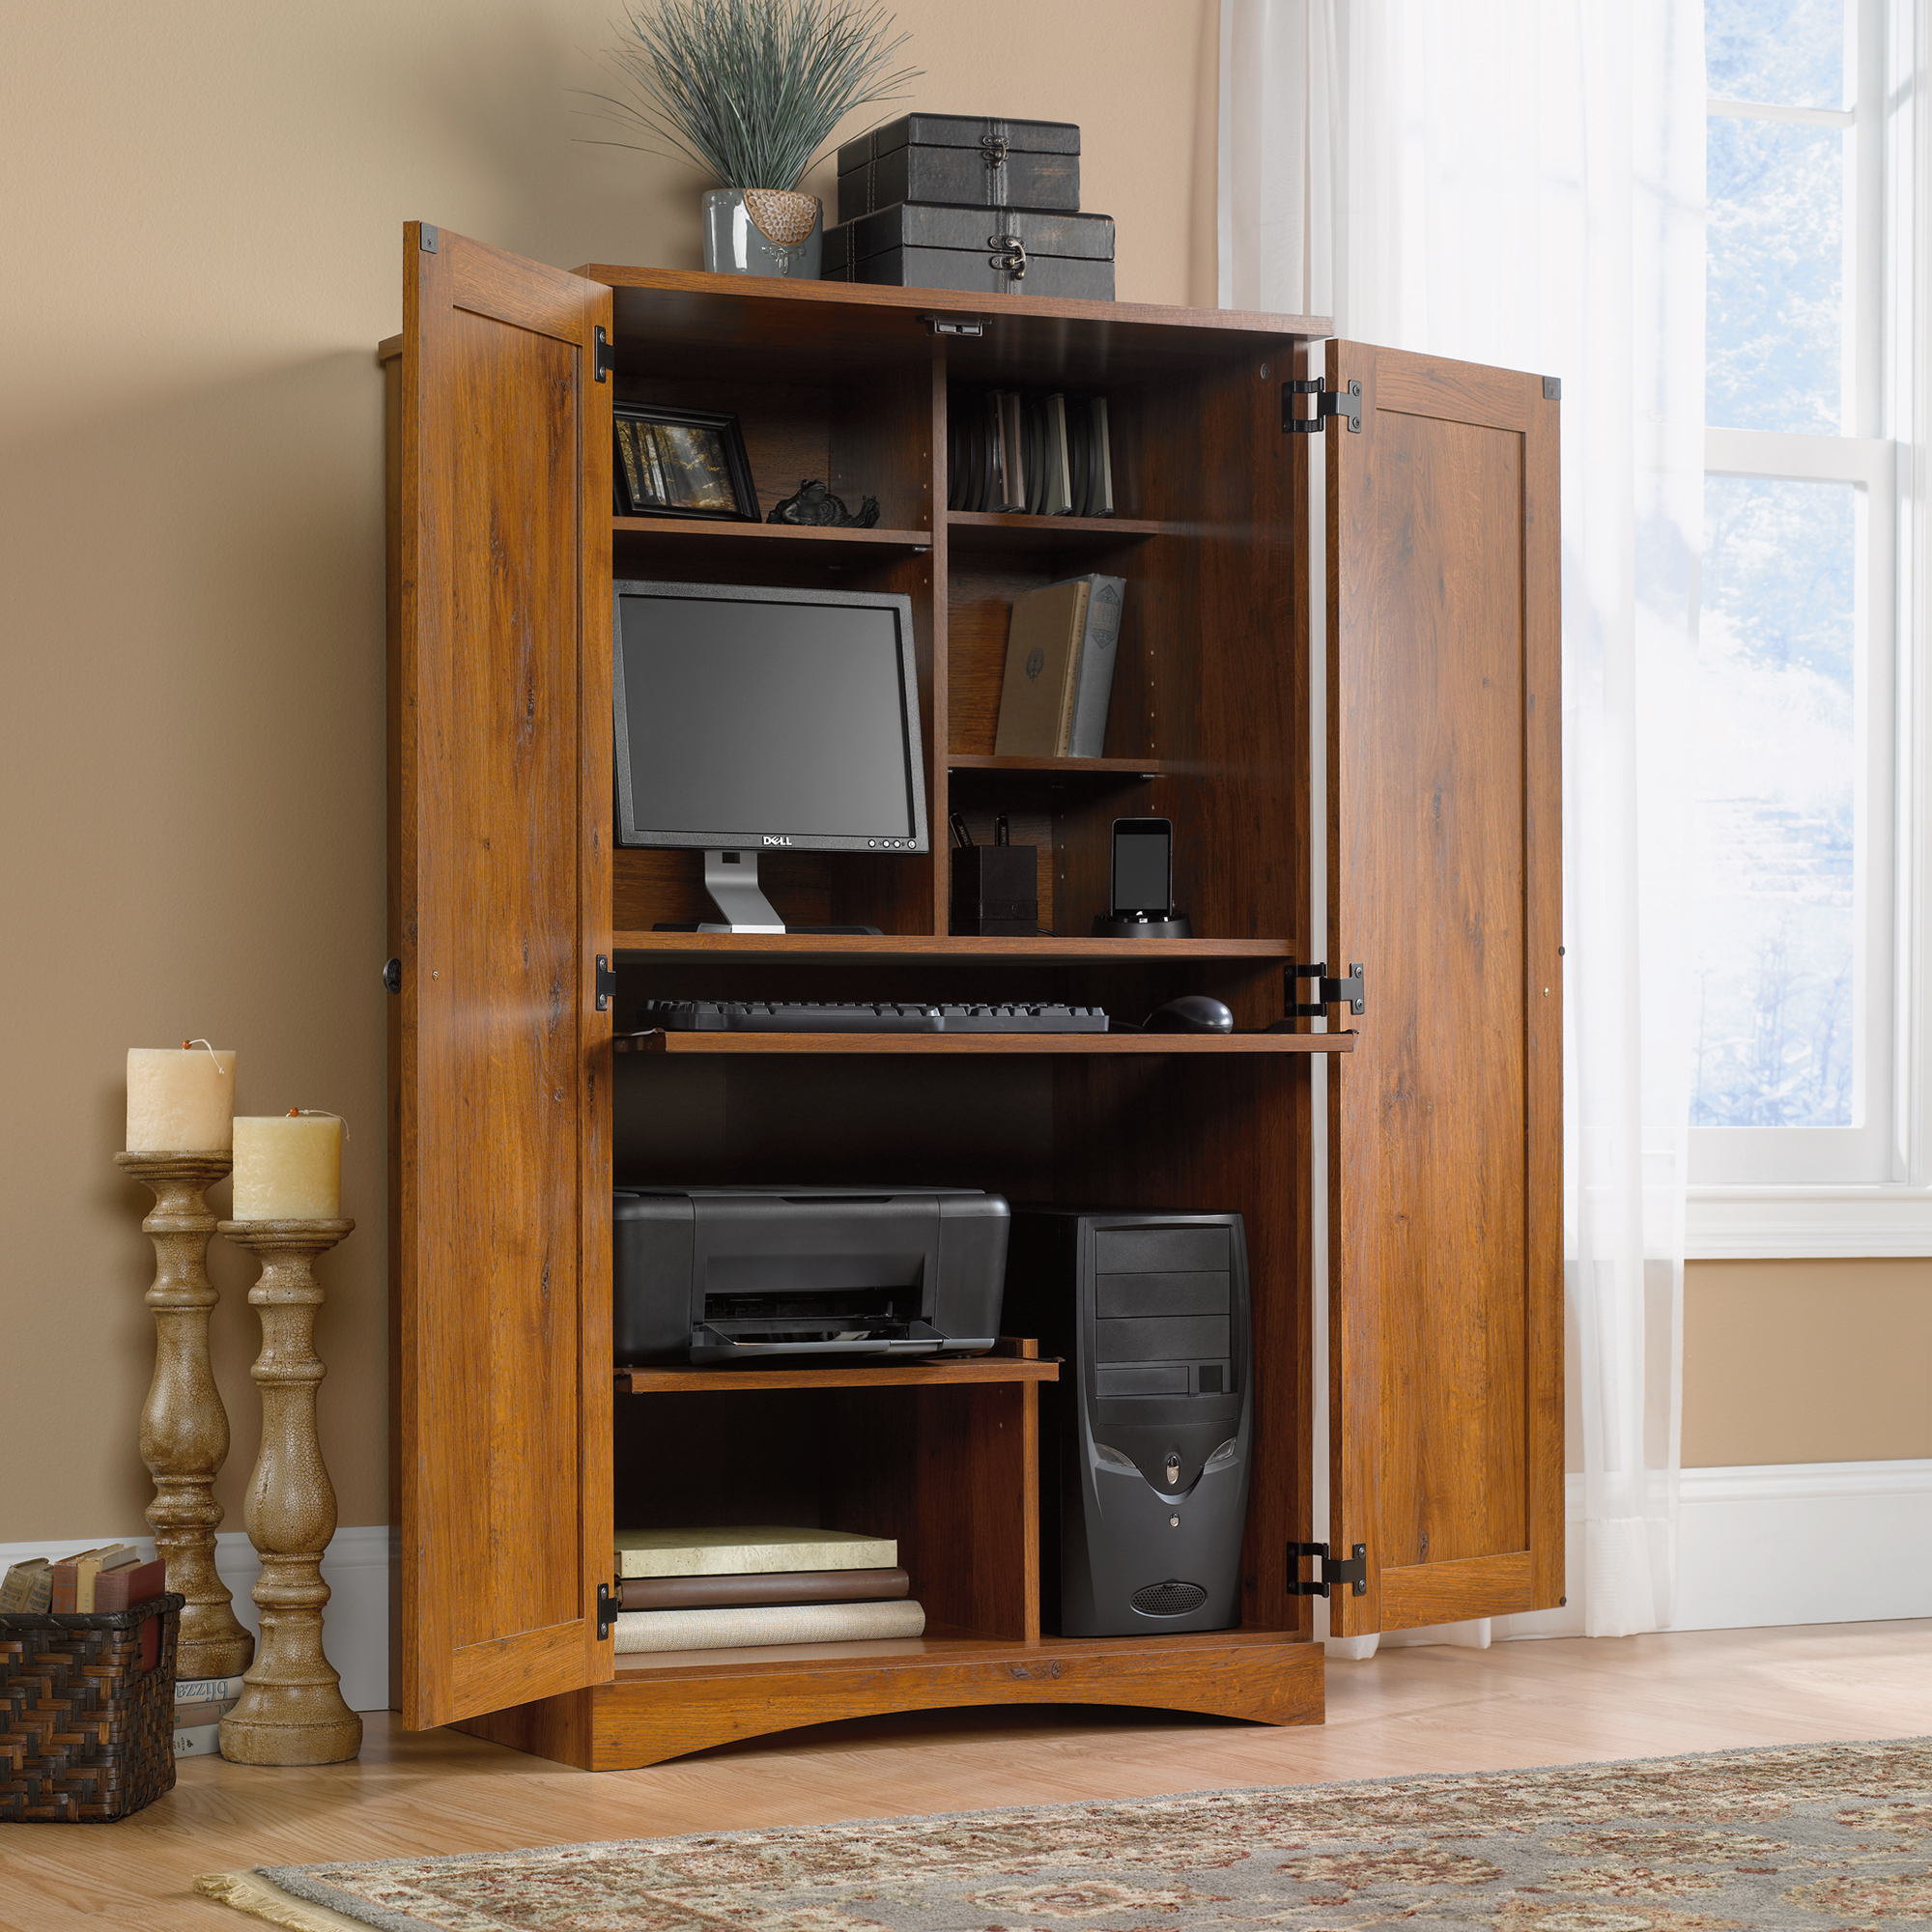 Armoire Furniture | Mirrored Armoire Furniture | Modern Armoire